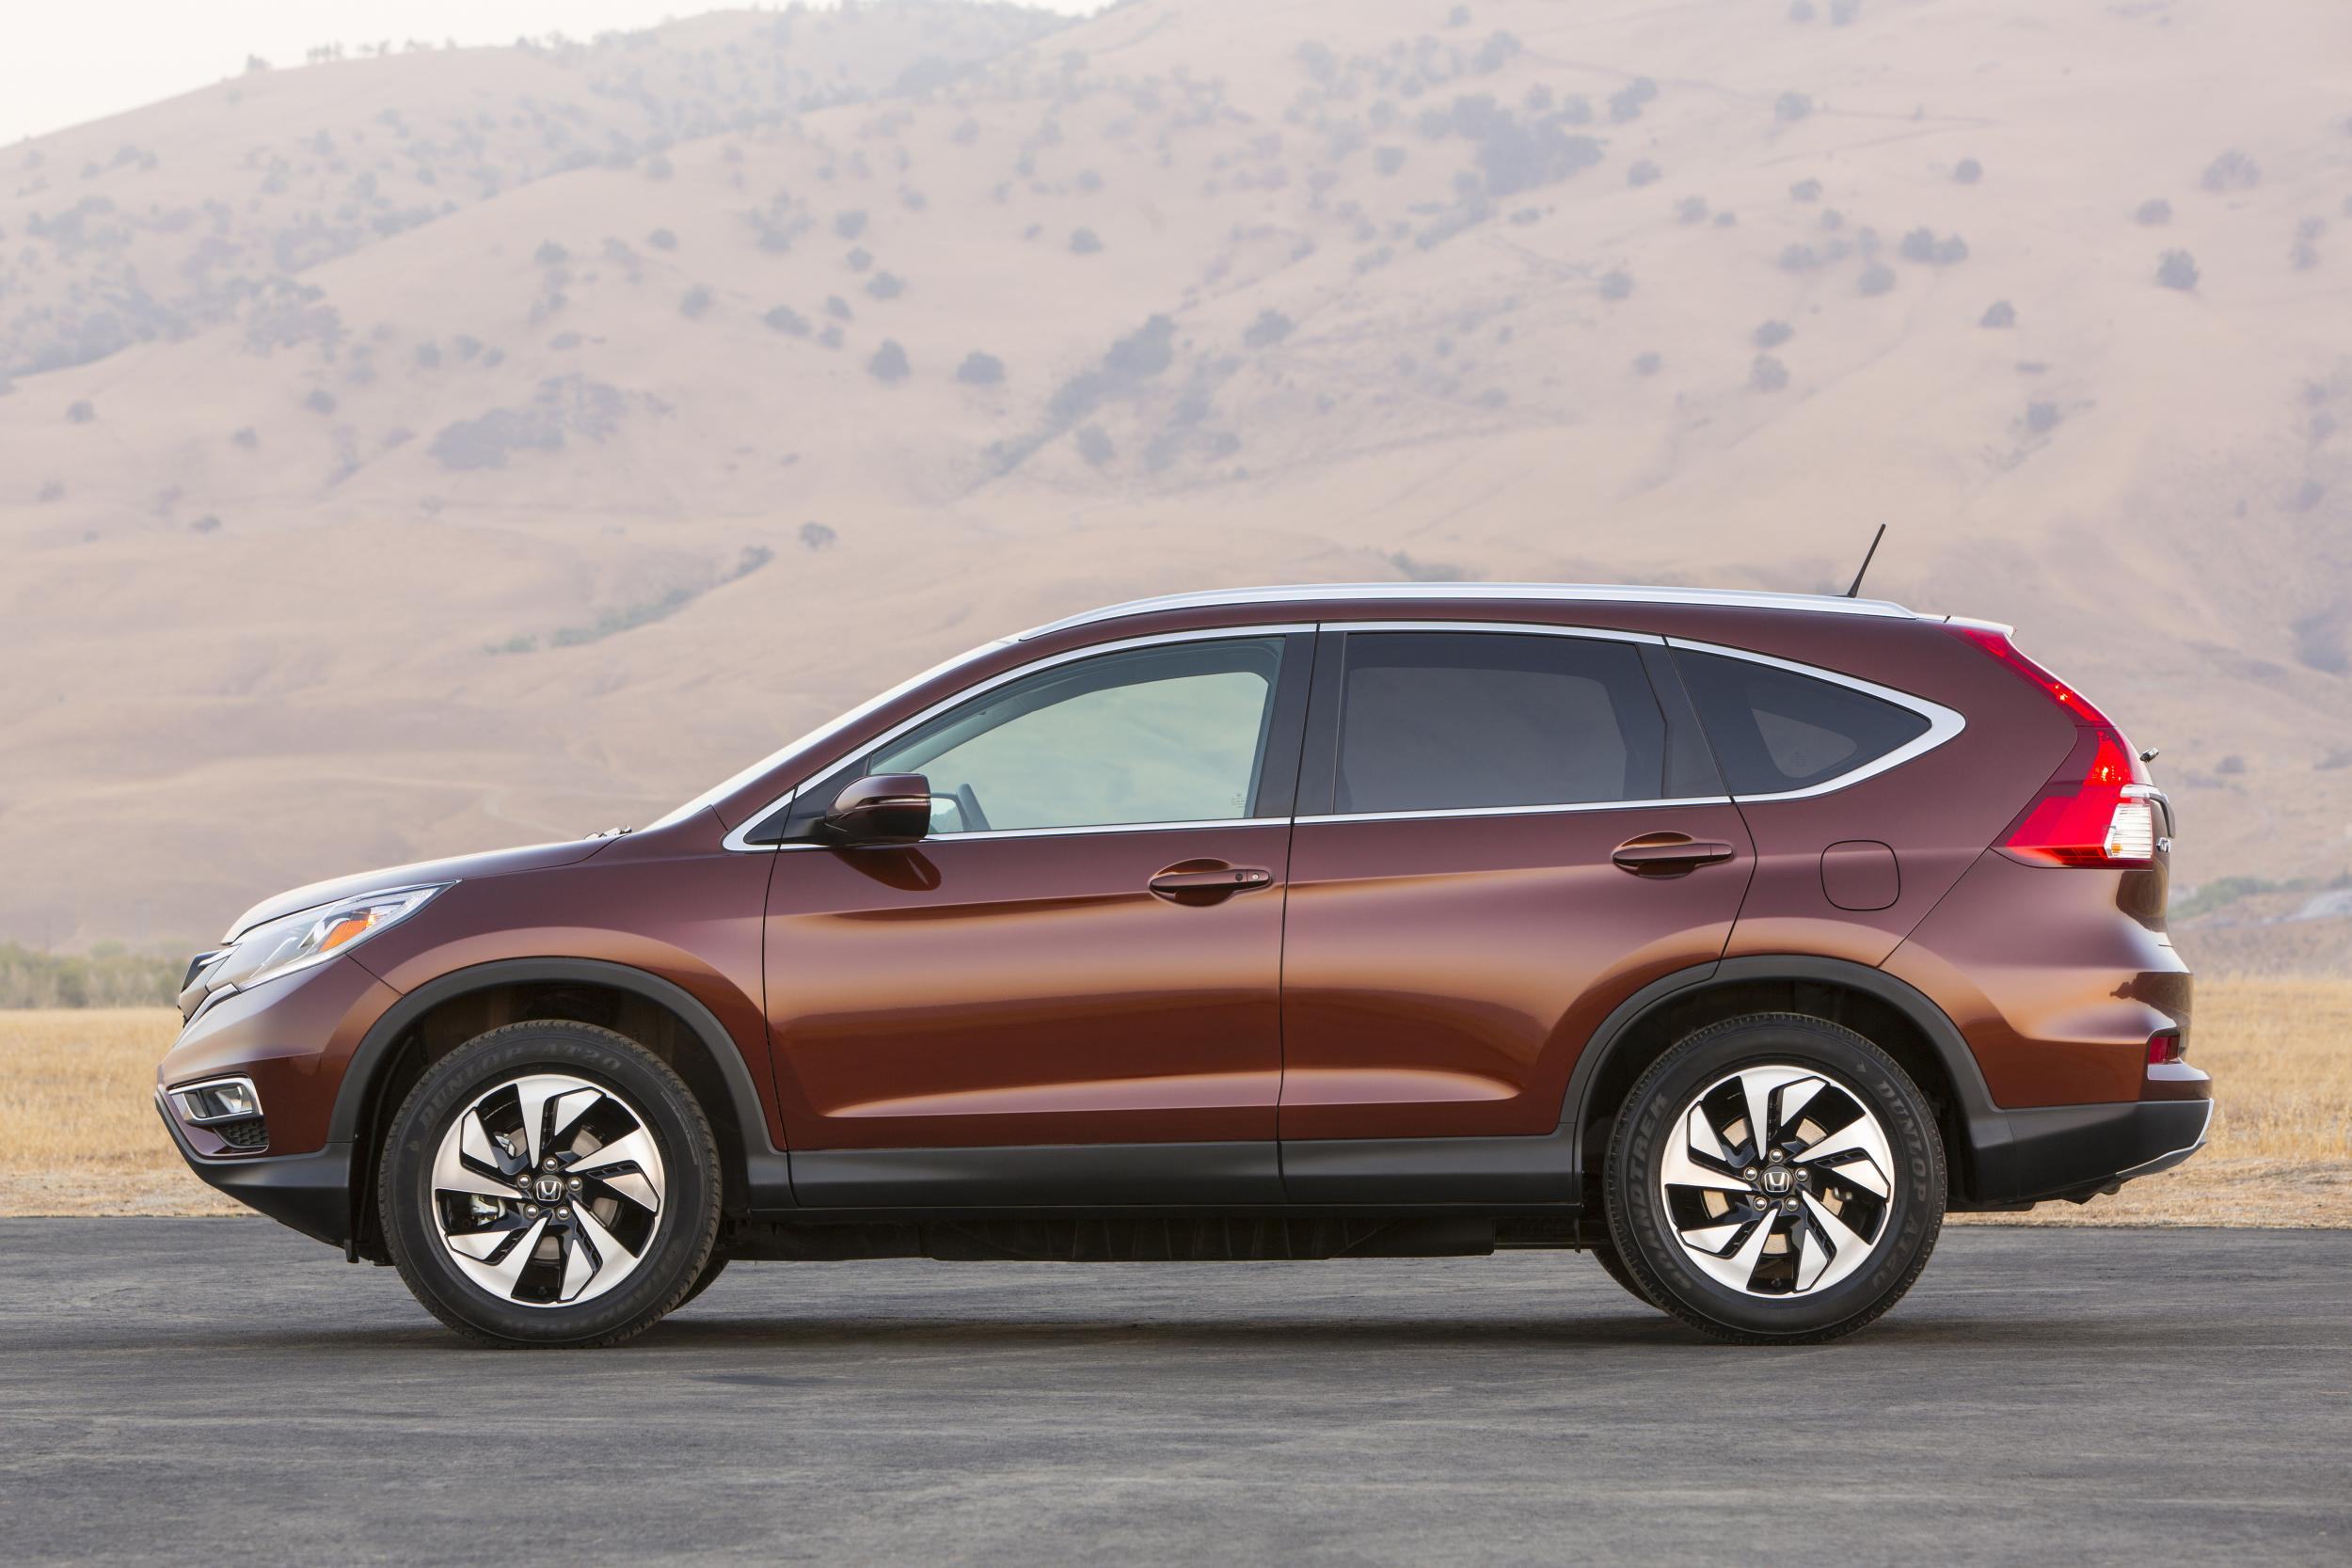 is multi the features technology comes cr bundle dow v touring showroom safety entertainment showoff of honda a angle packed and rearview with sensing crv